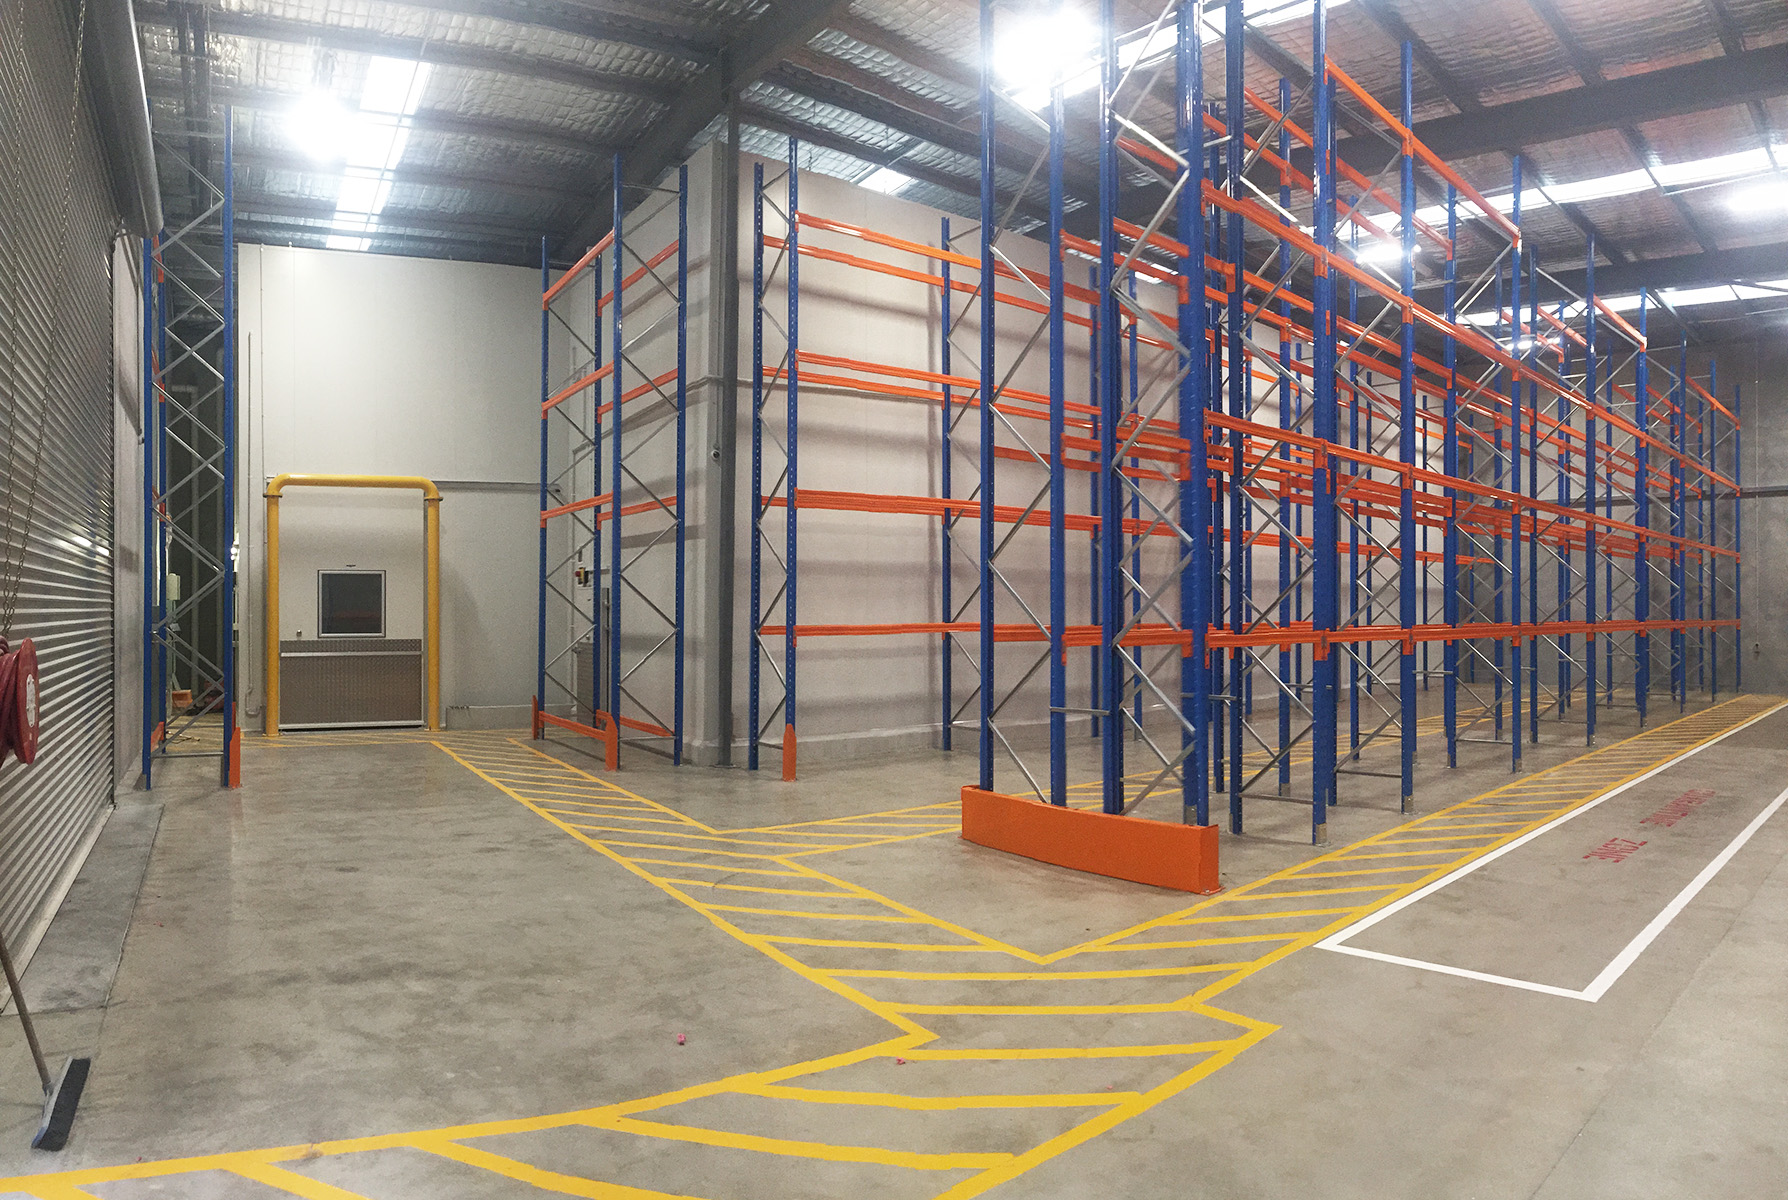 Large_Storage_Warehouse_Freezer_Automatic_Doors.jpg